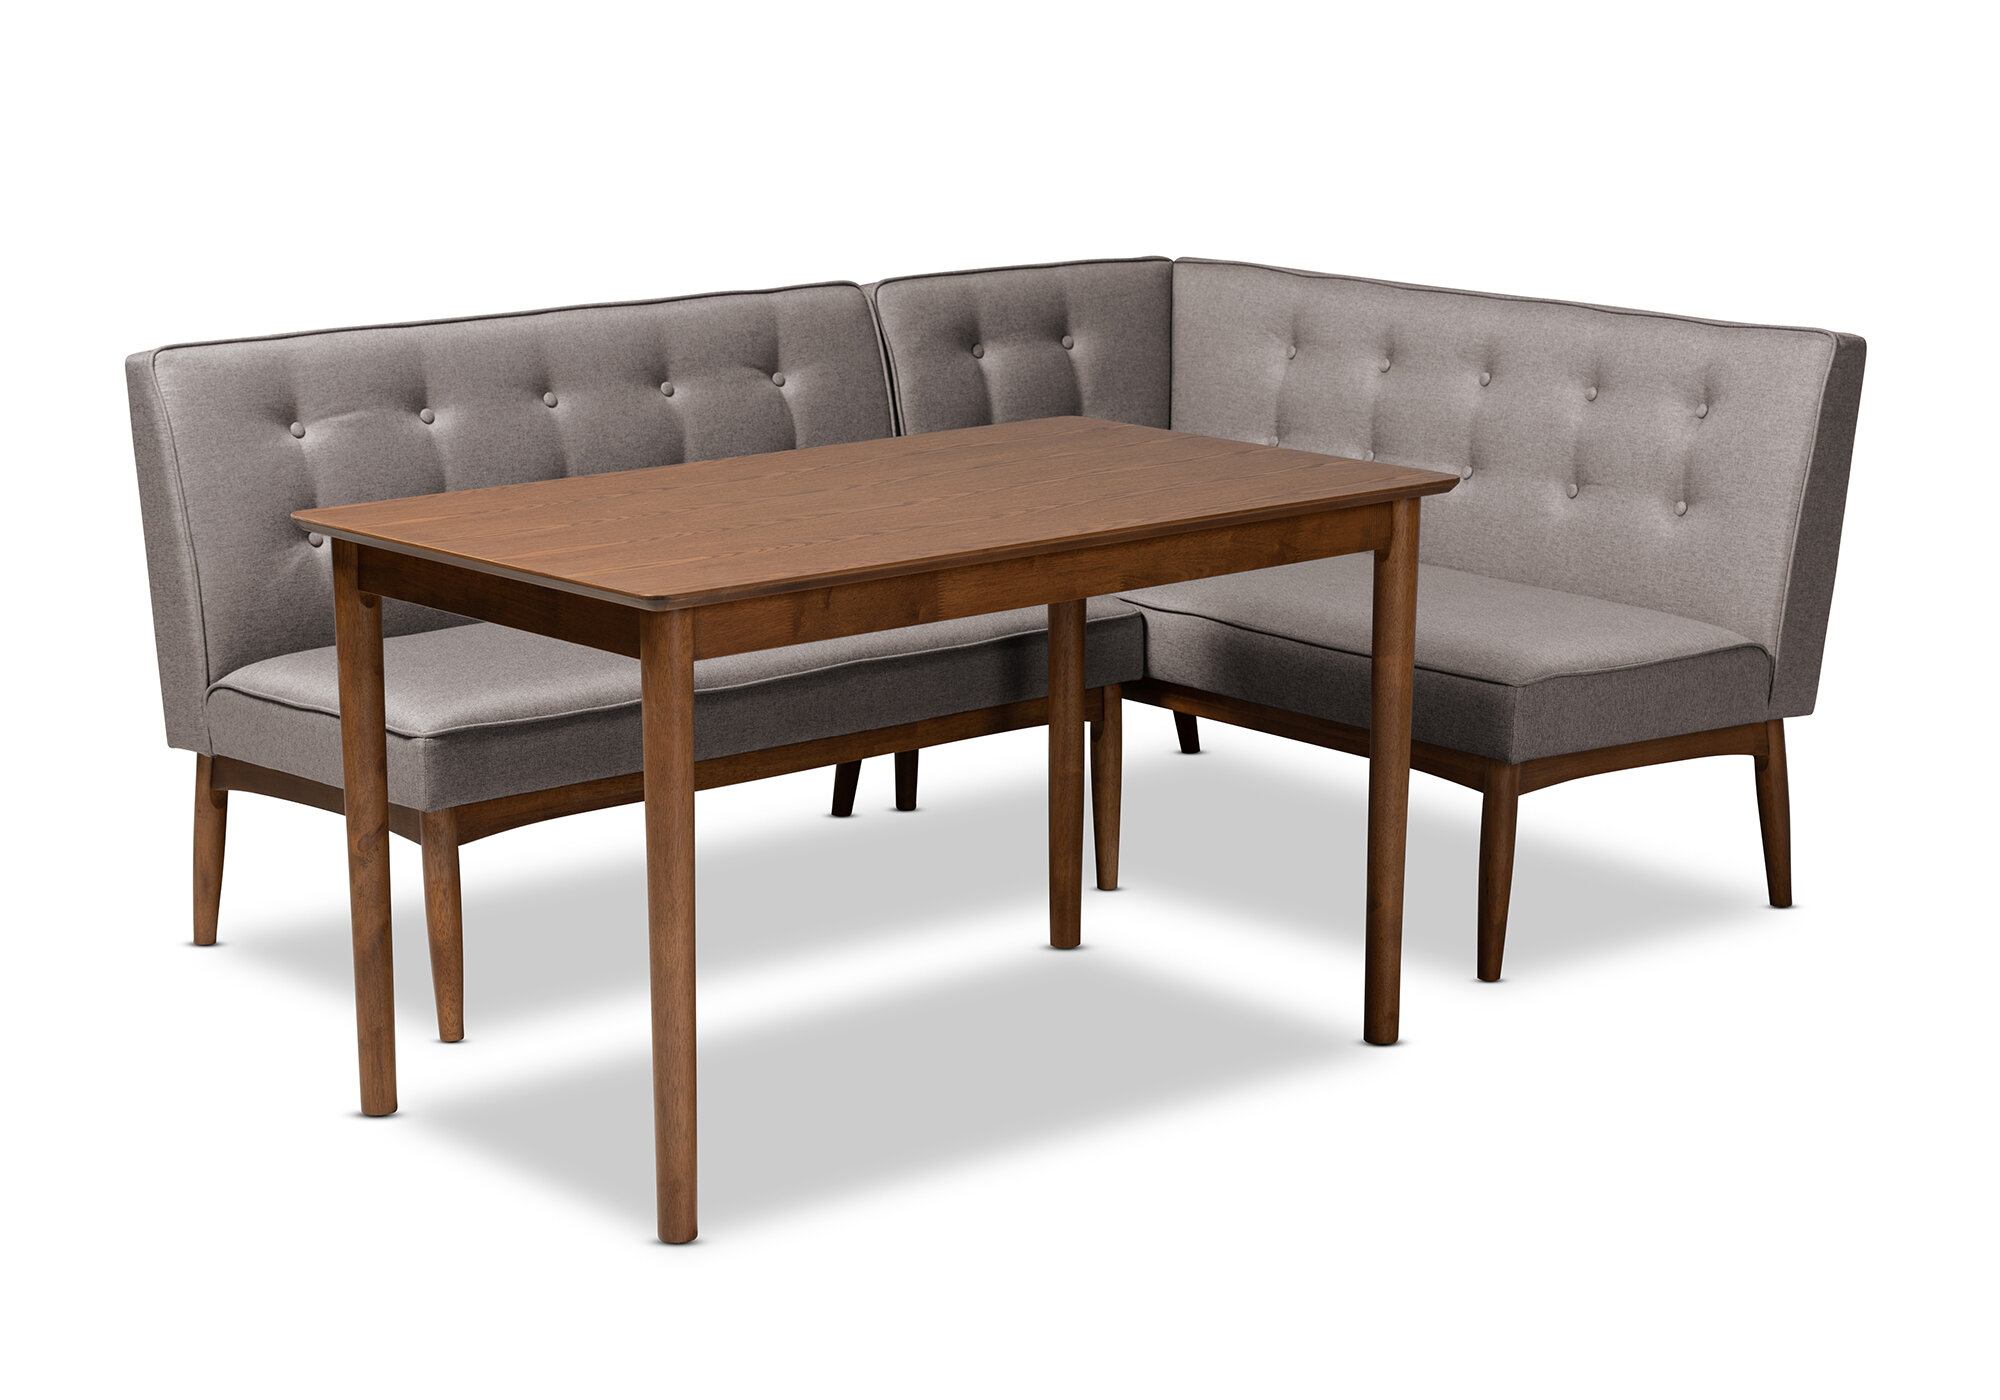 Bopp Mid Century Modern Upholstered 3 Piece Breakfast Nook Dining Set Intended For 2018 Liles 5 Piece Breakfast Nook Dining Sets (Image 2 of 20)